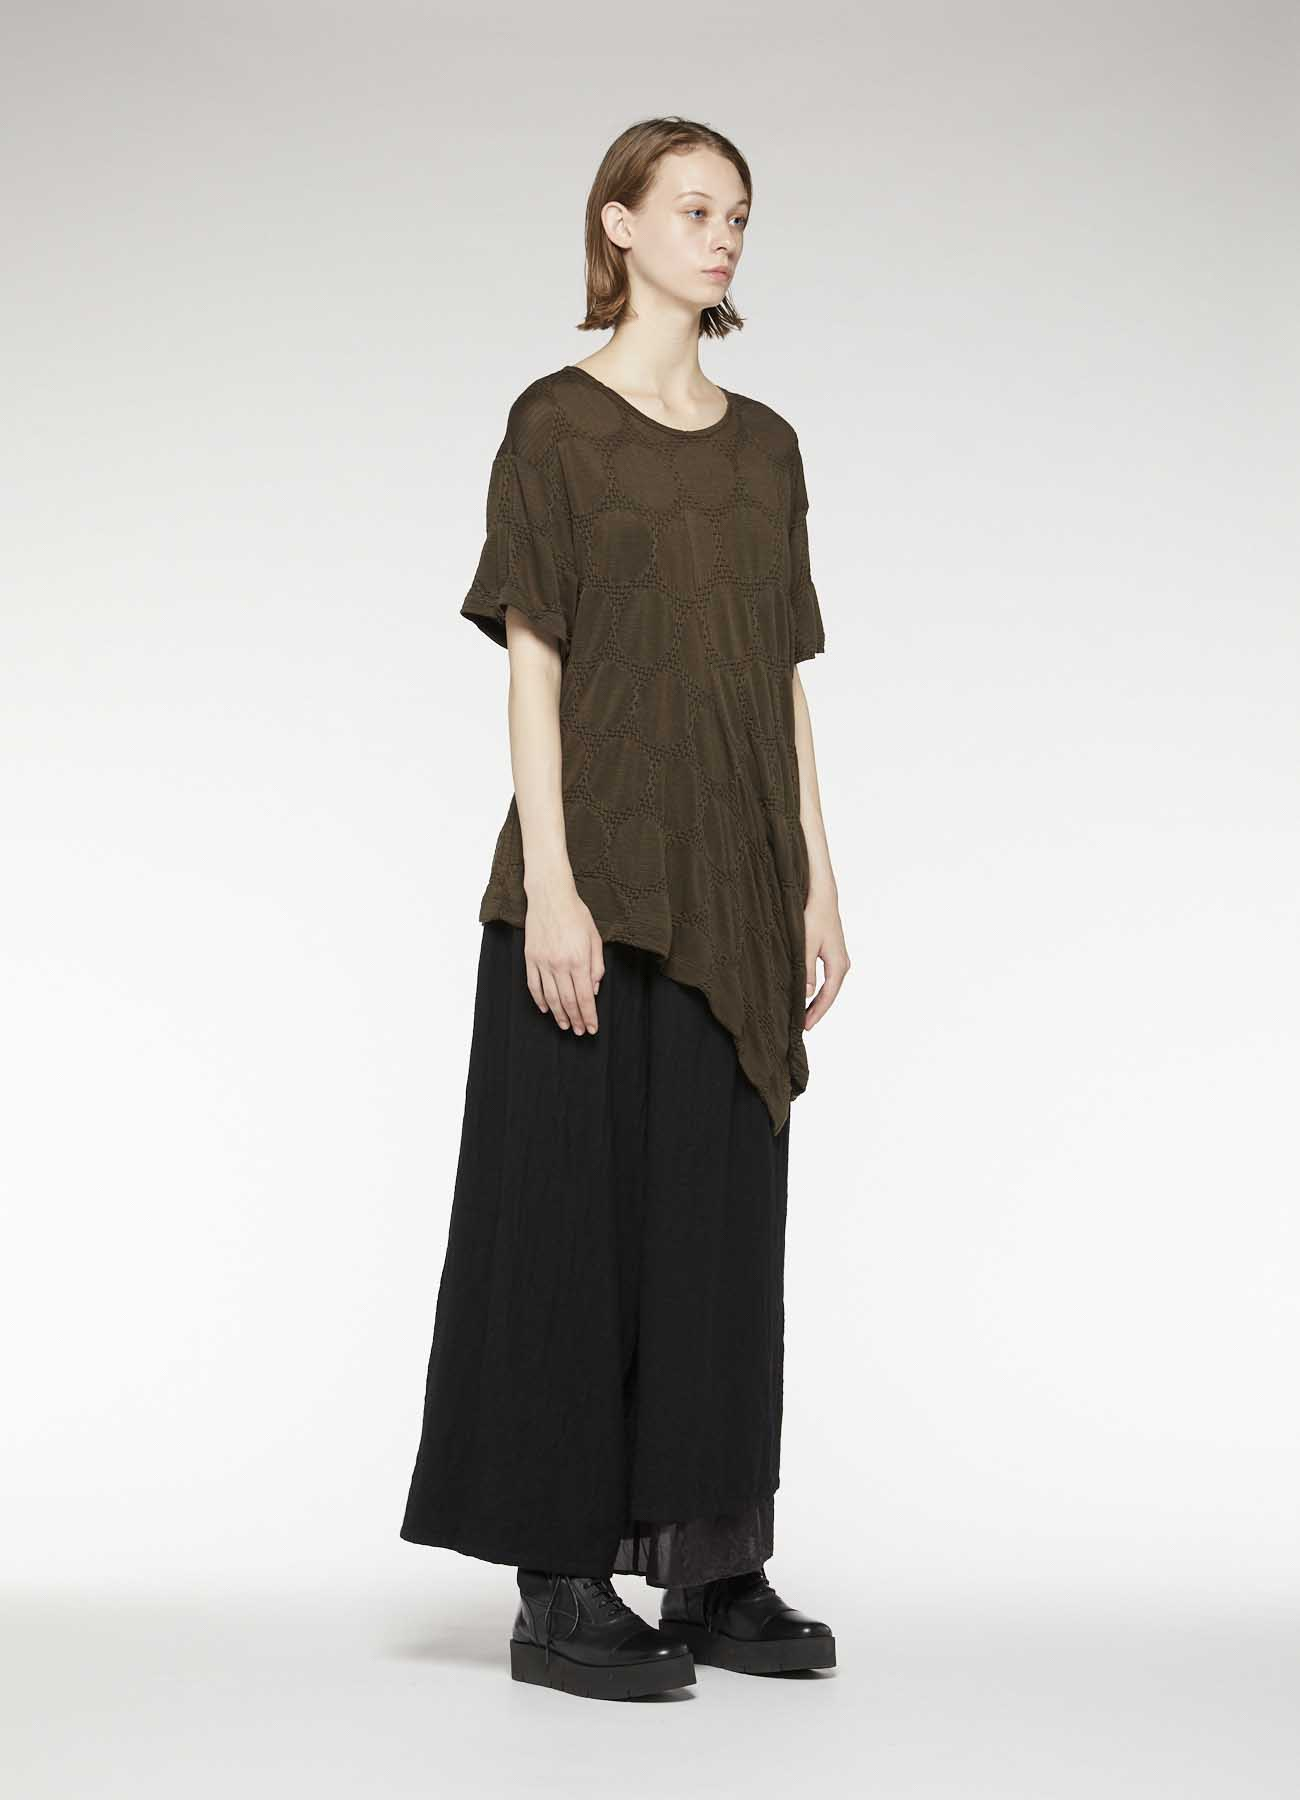 TENCEL DOT TUCK JACQUARD DRAPE SHORT SLEEVE T-SHIRT